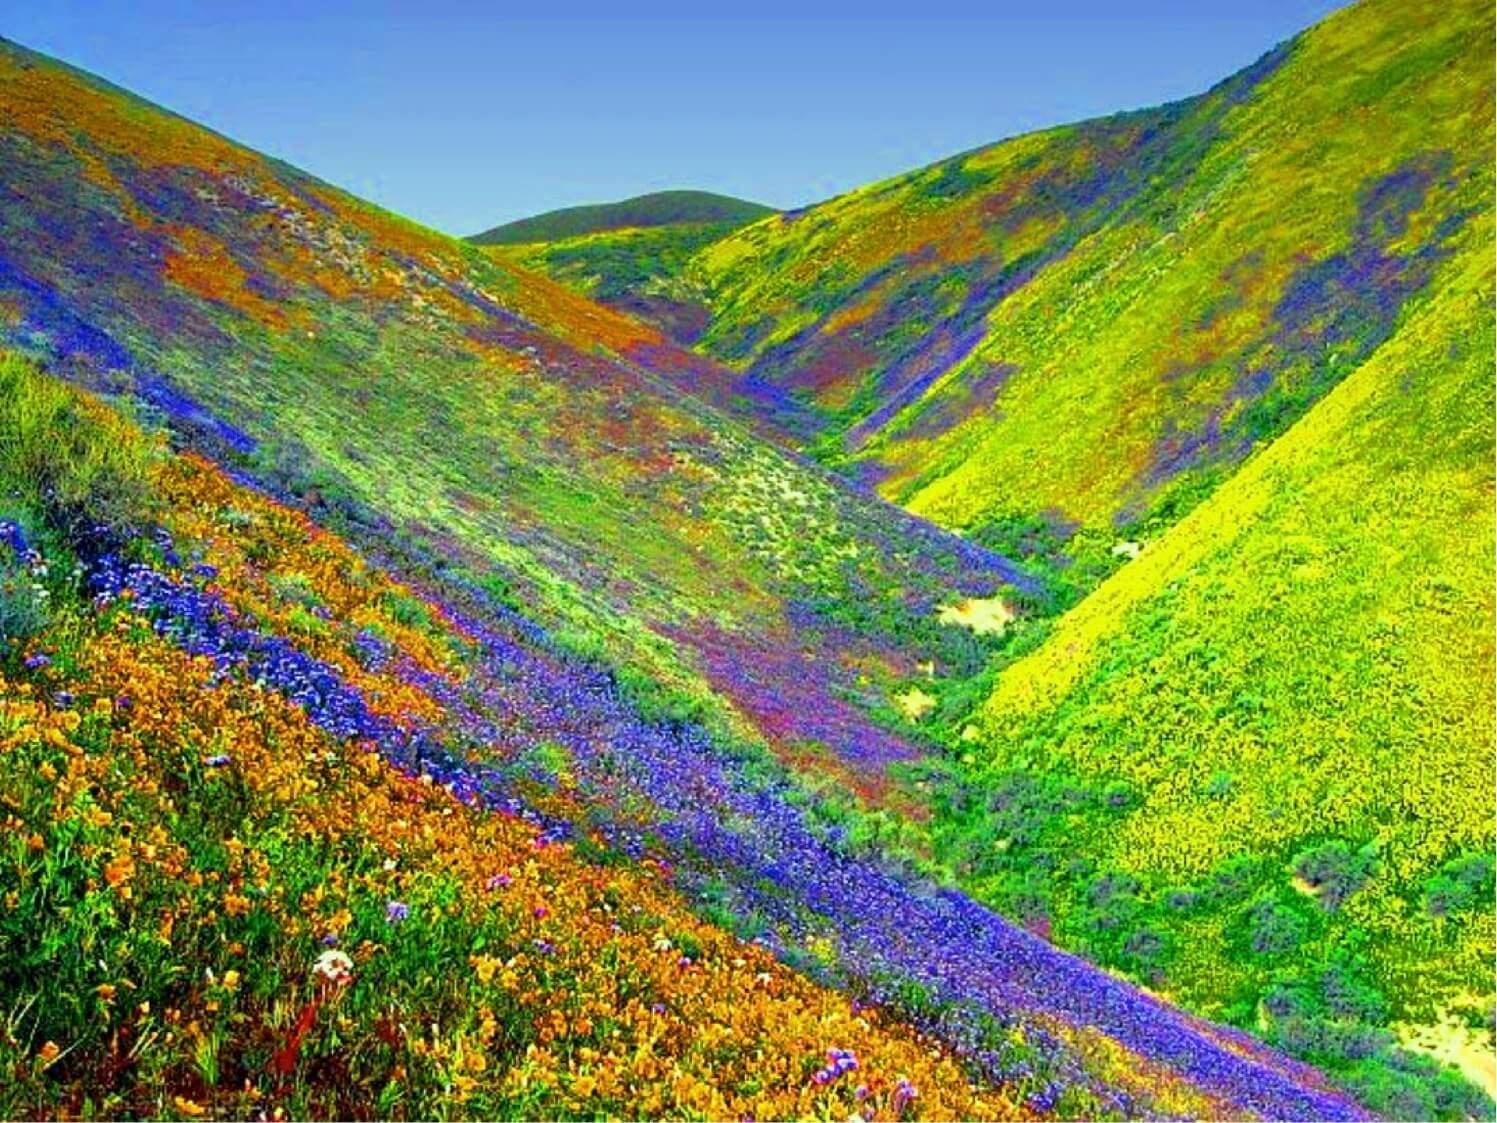 Valley of flowers the beauty of uttarakhand wiwigo blog valley of flowers is a fairy land situated high in the himalayas of the uttaranchal at an altitude of 3600 meters above sea level protected by snowy izmirmasajfo Images